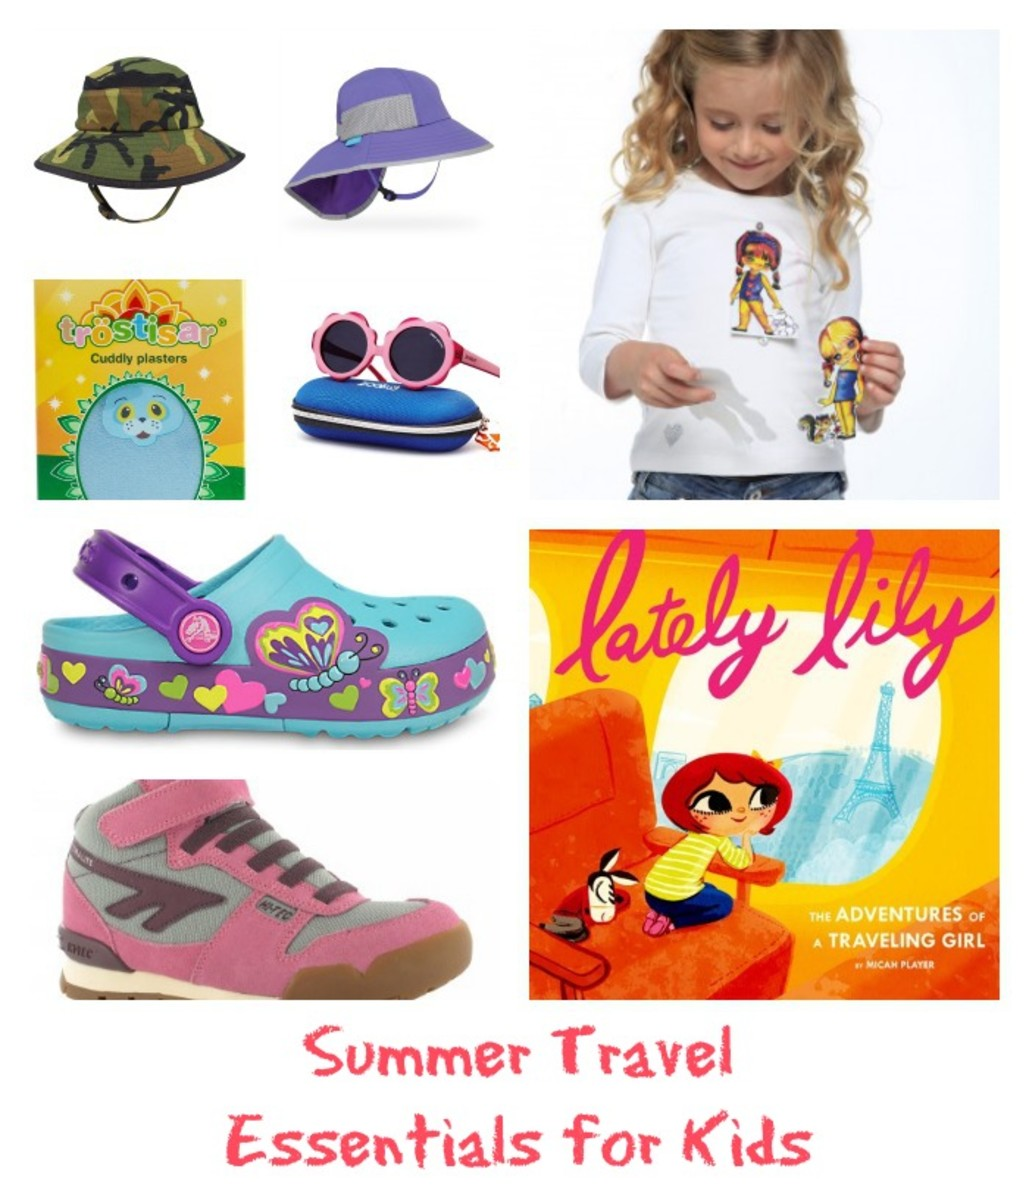 Summer Travel Essentials for Kids.jpg.jpg